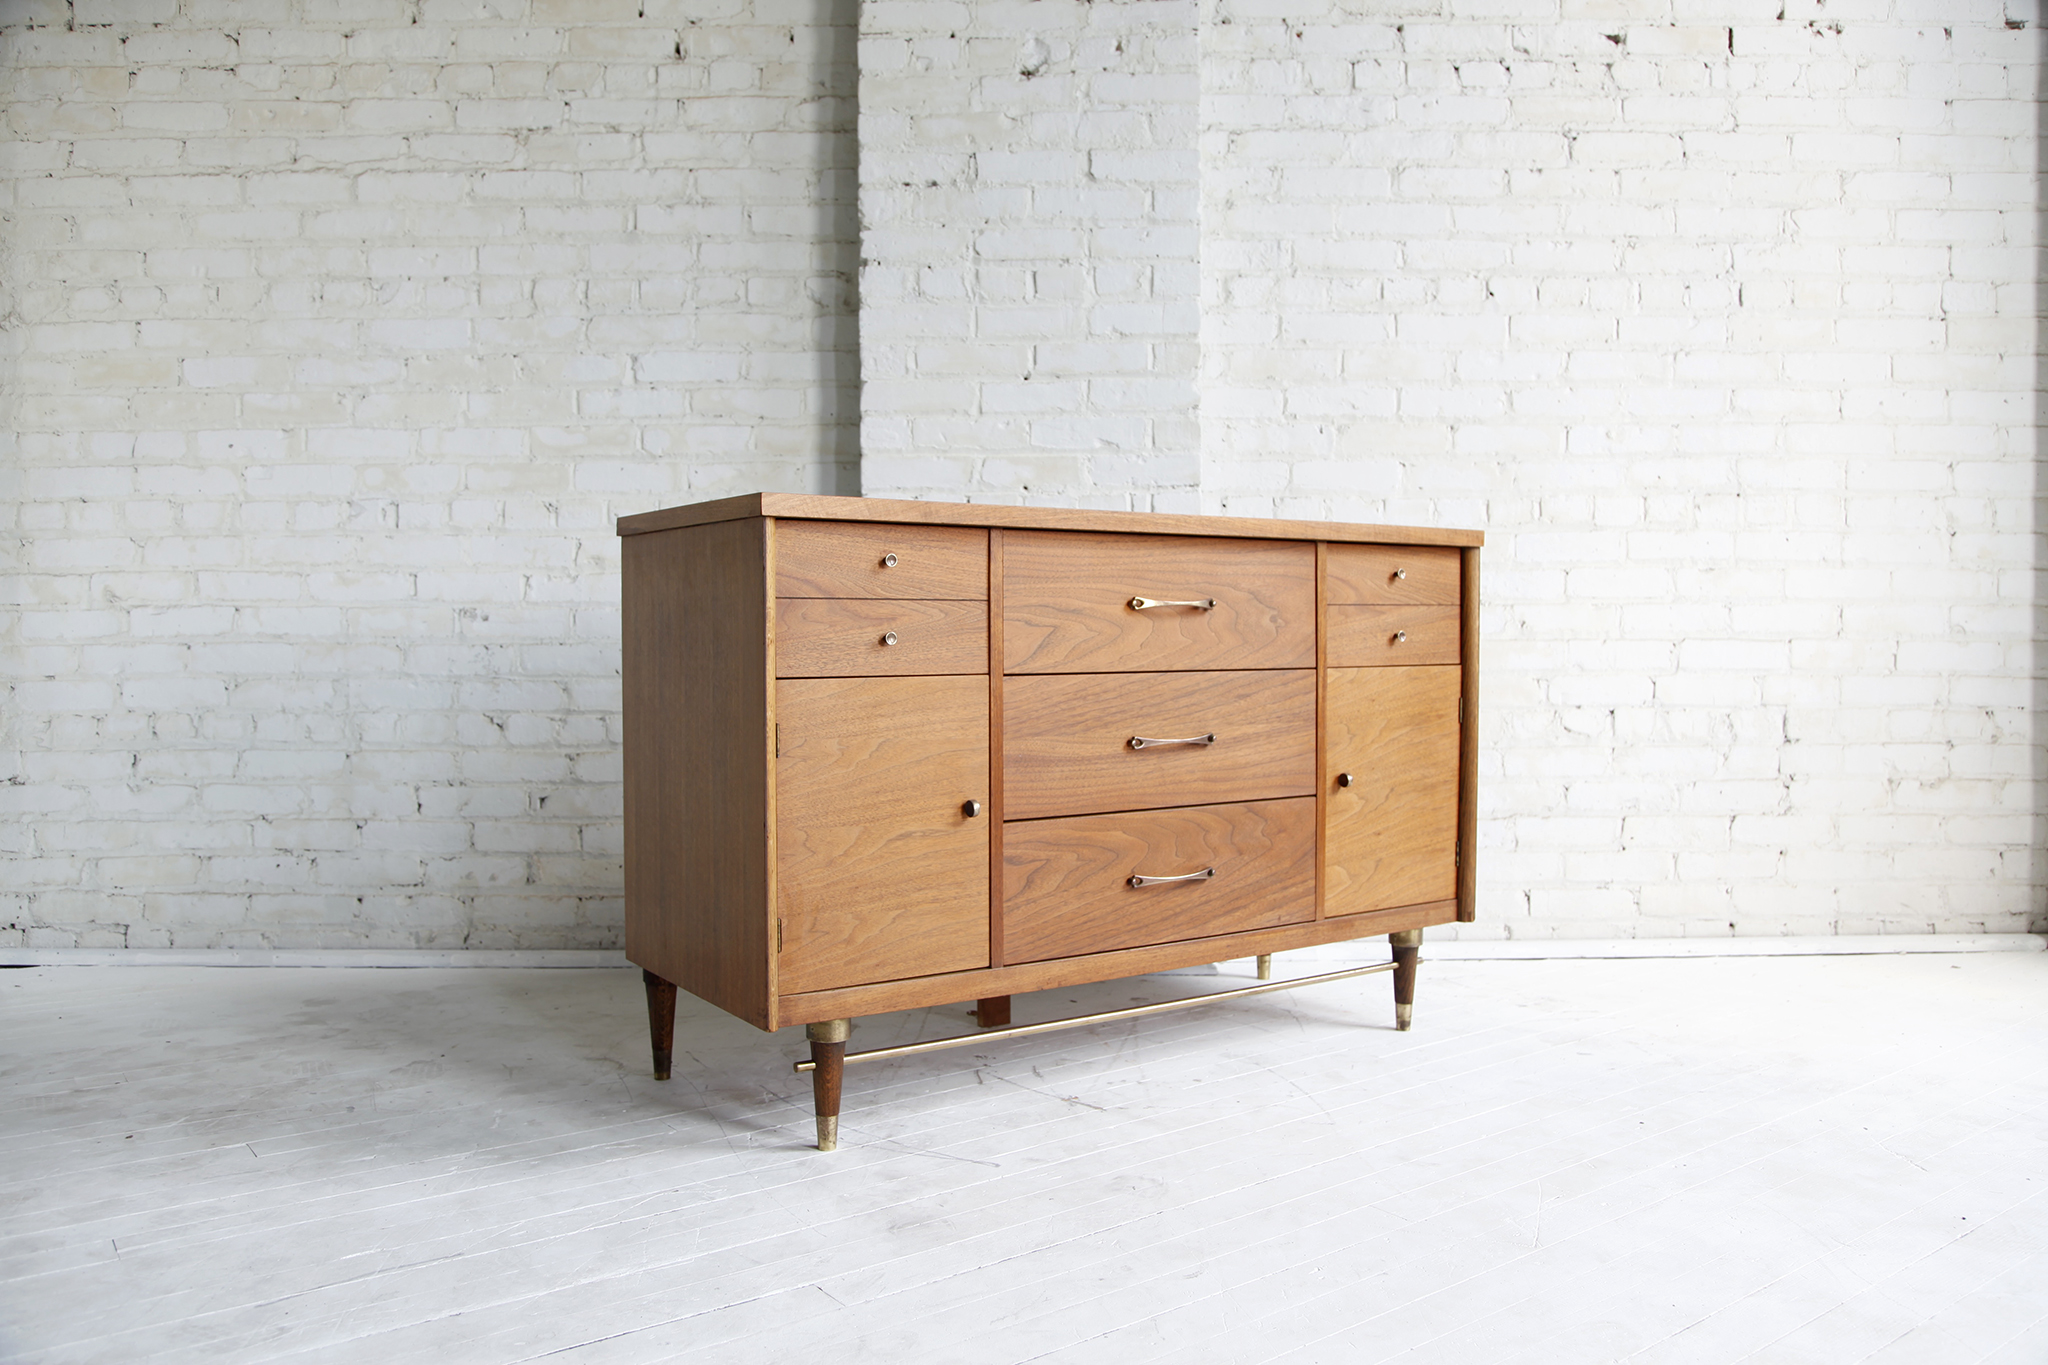 Delightful Mid Century Modern Credenza By Bassett Furniture